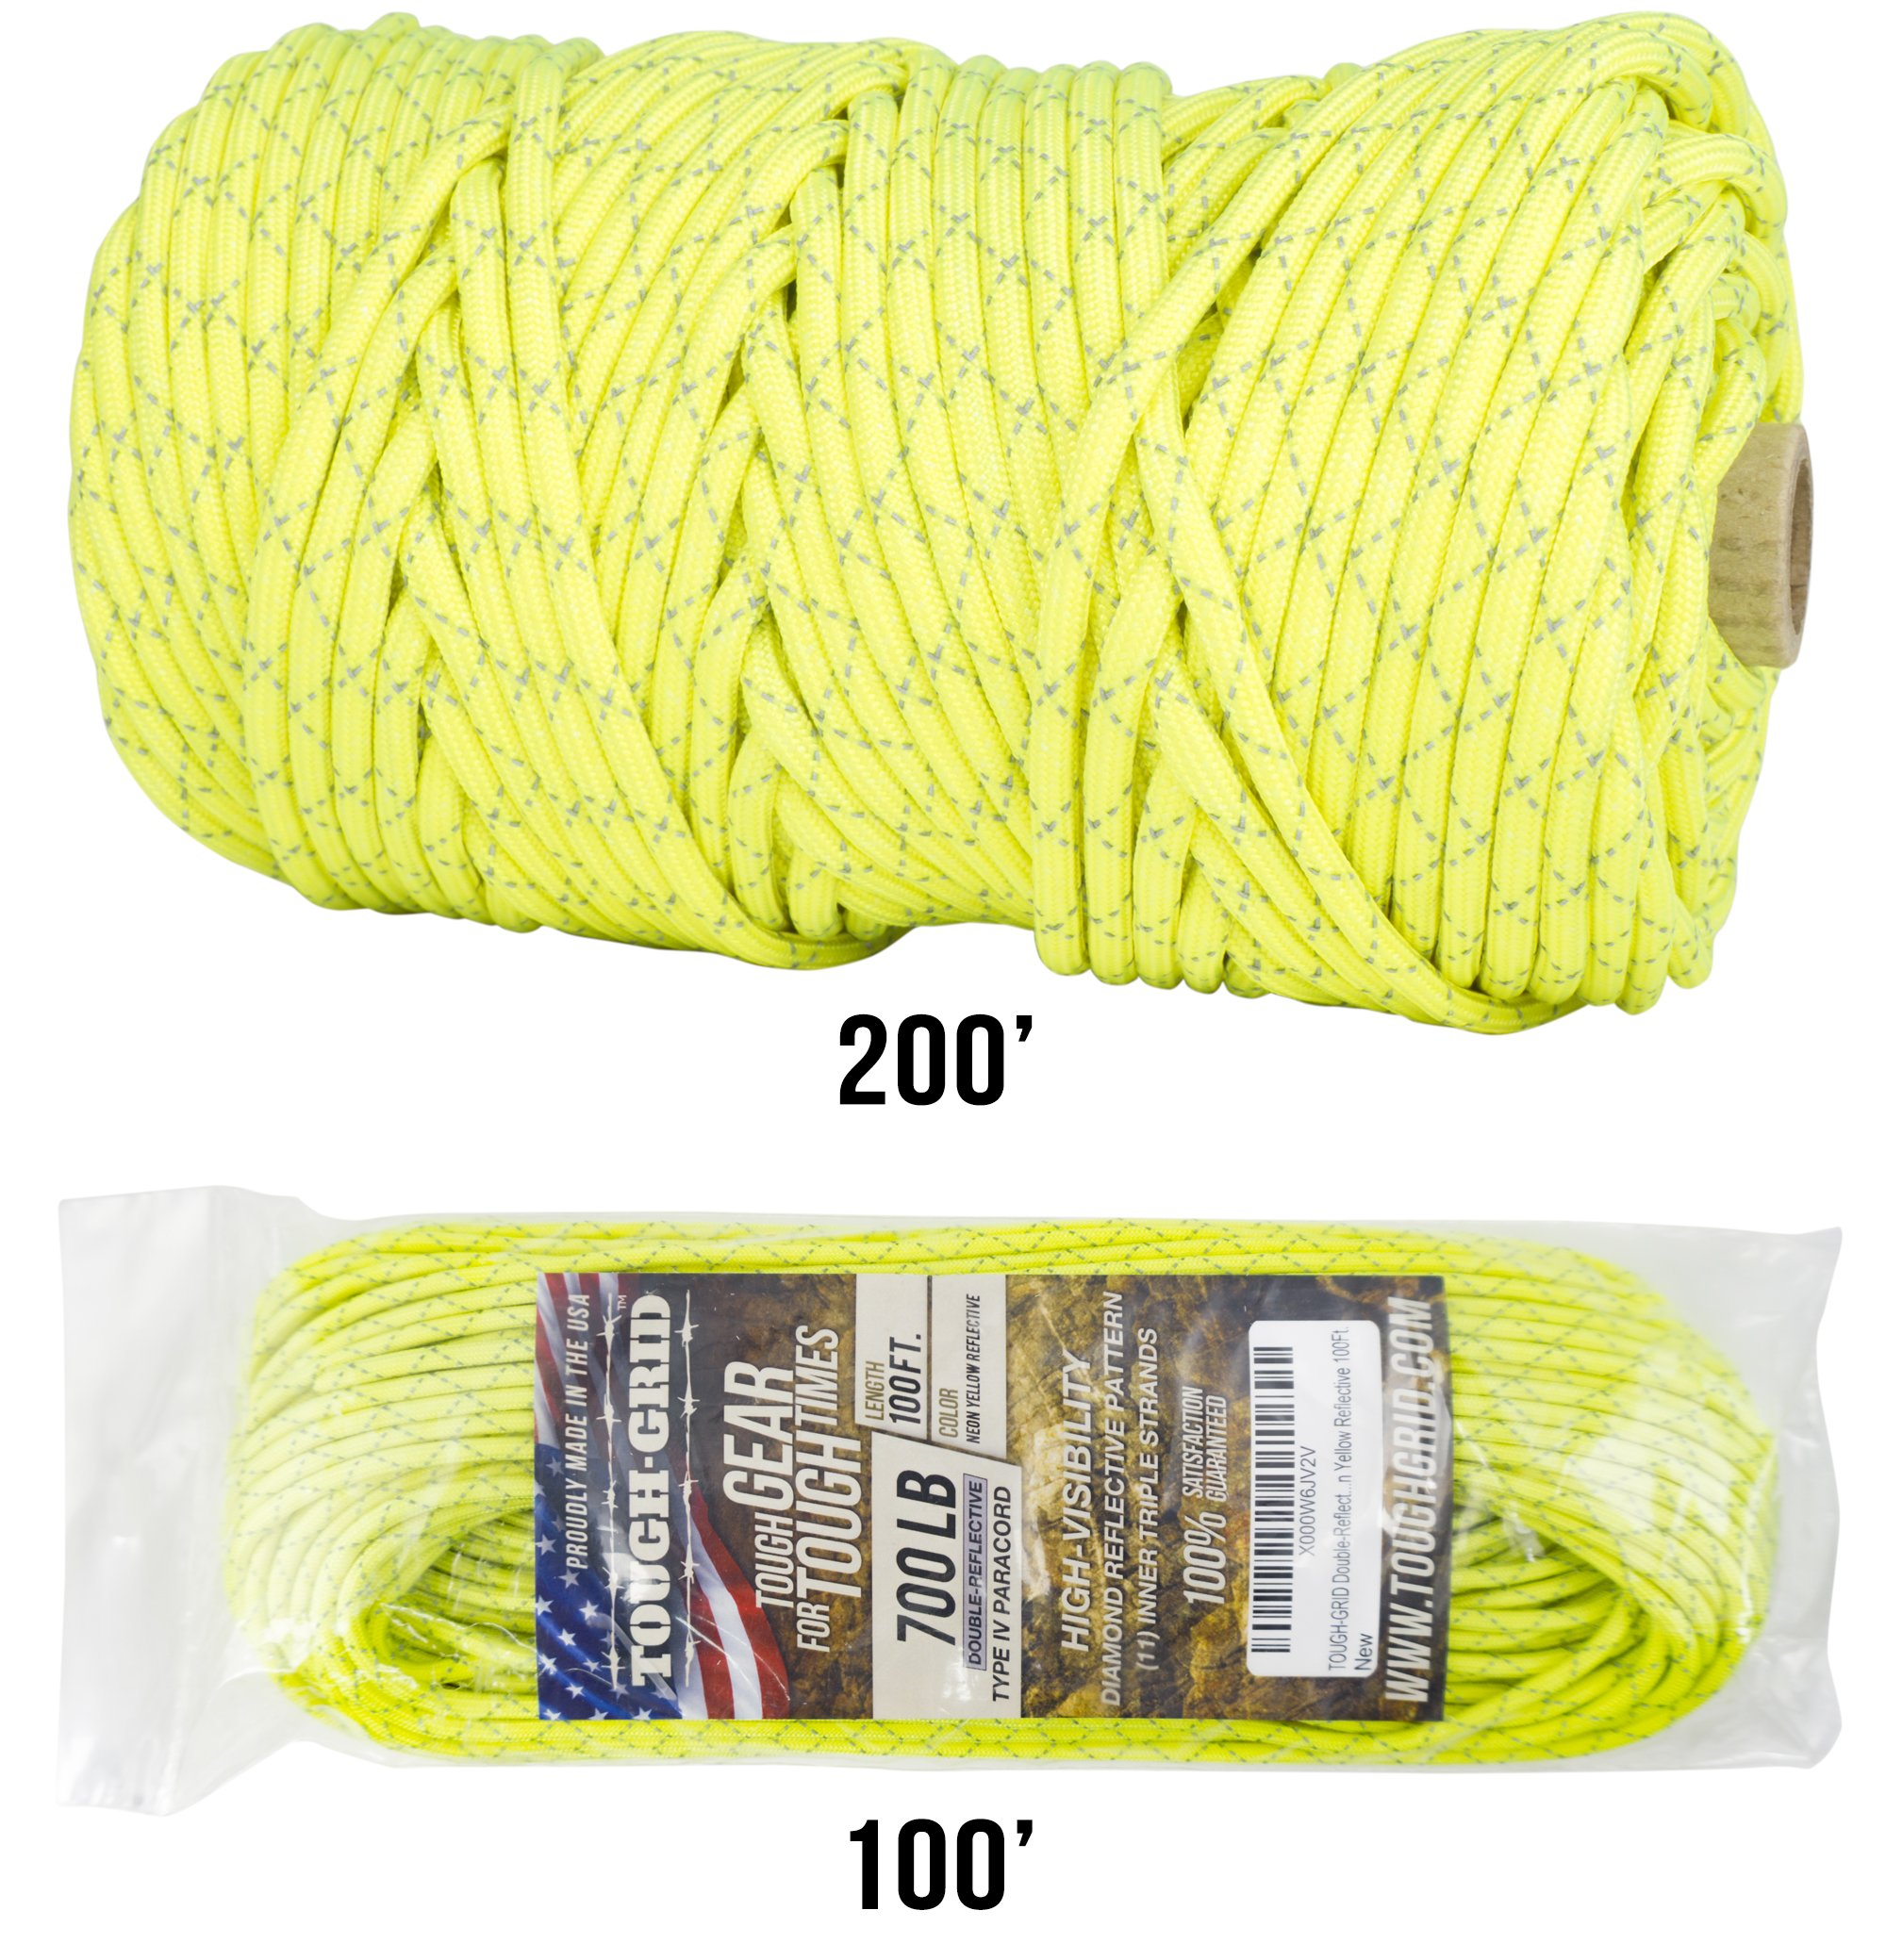 TOUGH-GRID New 700lb Double-Reflective Paracord/Parachute Cord - 2 Vibrant Retro-Reflective Strands for The Ultimate High-Visibility Cord - 100% Nylon - Made in USA - 100Ft. Neon Yellow Reflective